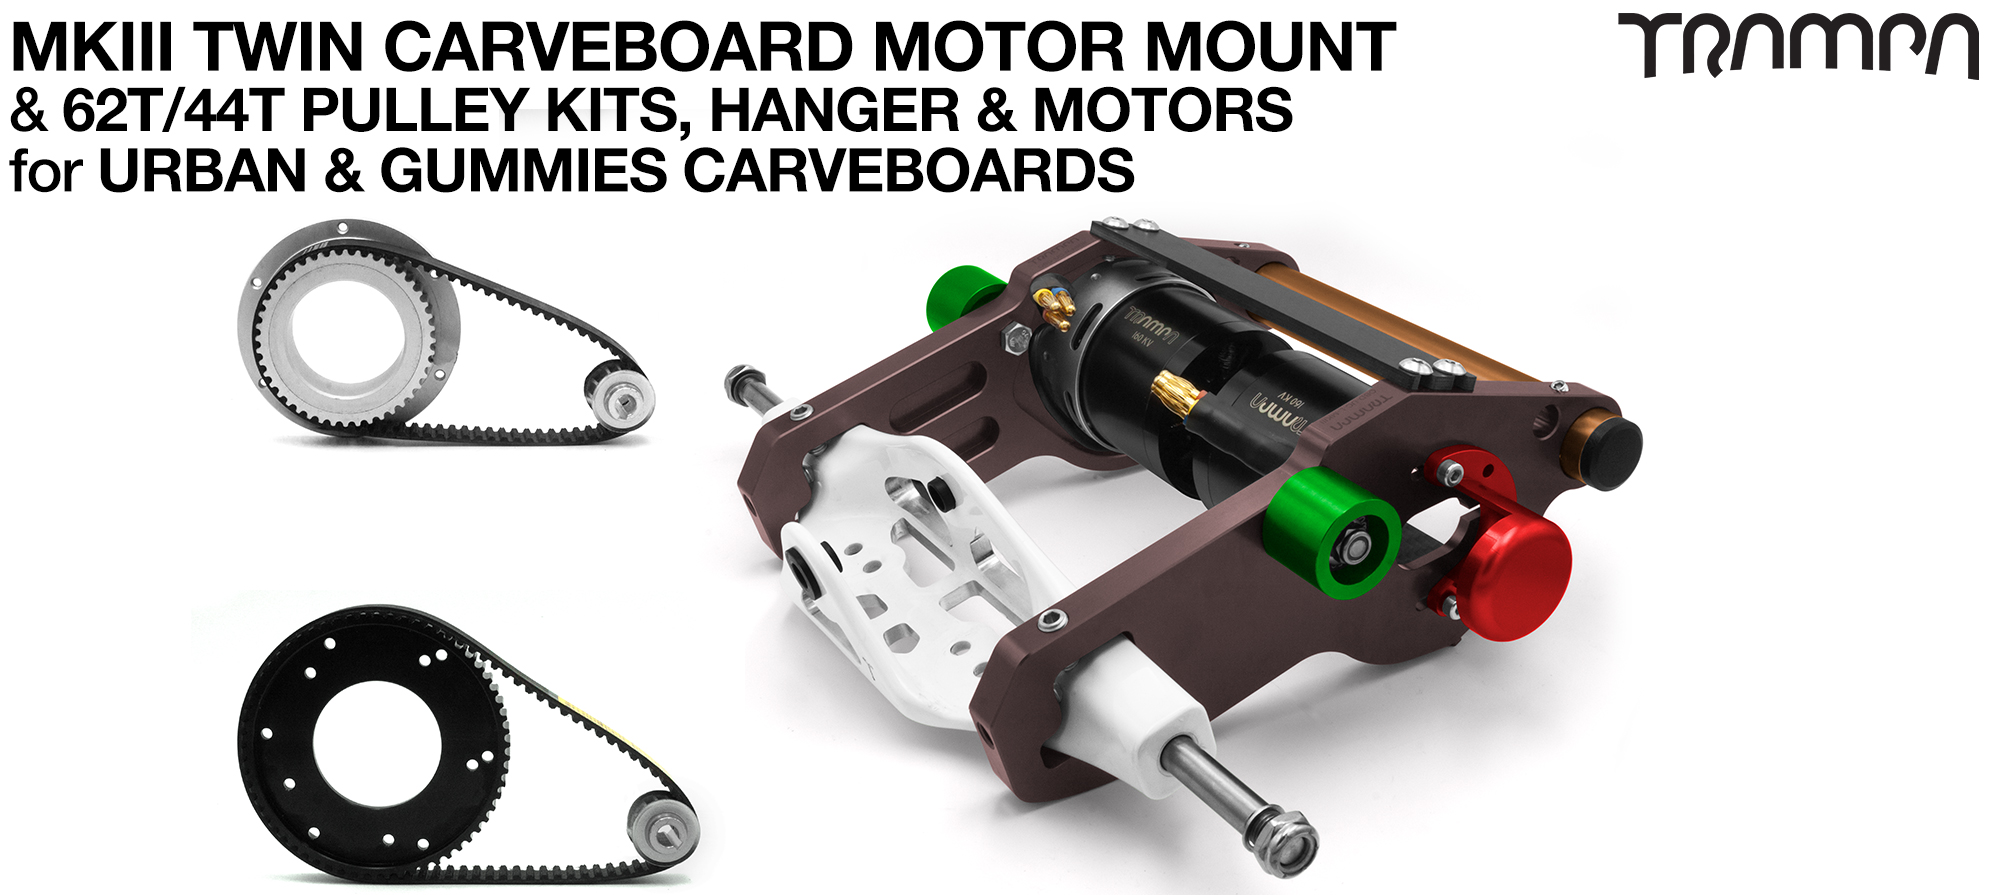 MkIII 2in1 CARVEBOARD Motormount on a HANGER with 44 tooth GUMMY & 62 tooth URBAN Pulleys & TRAMPA Motor - TWIN